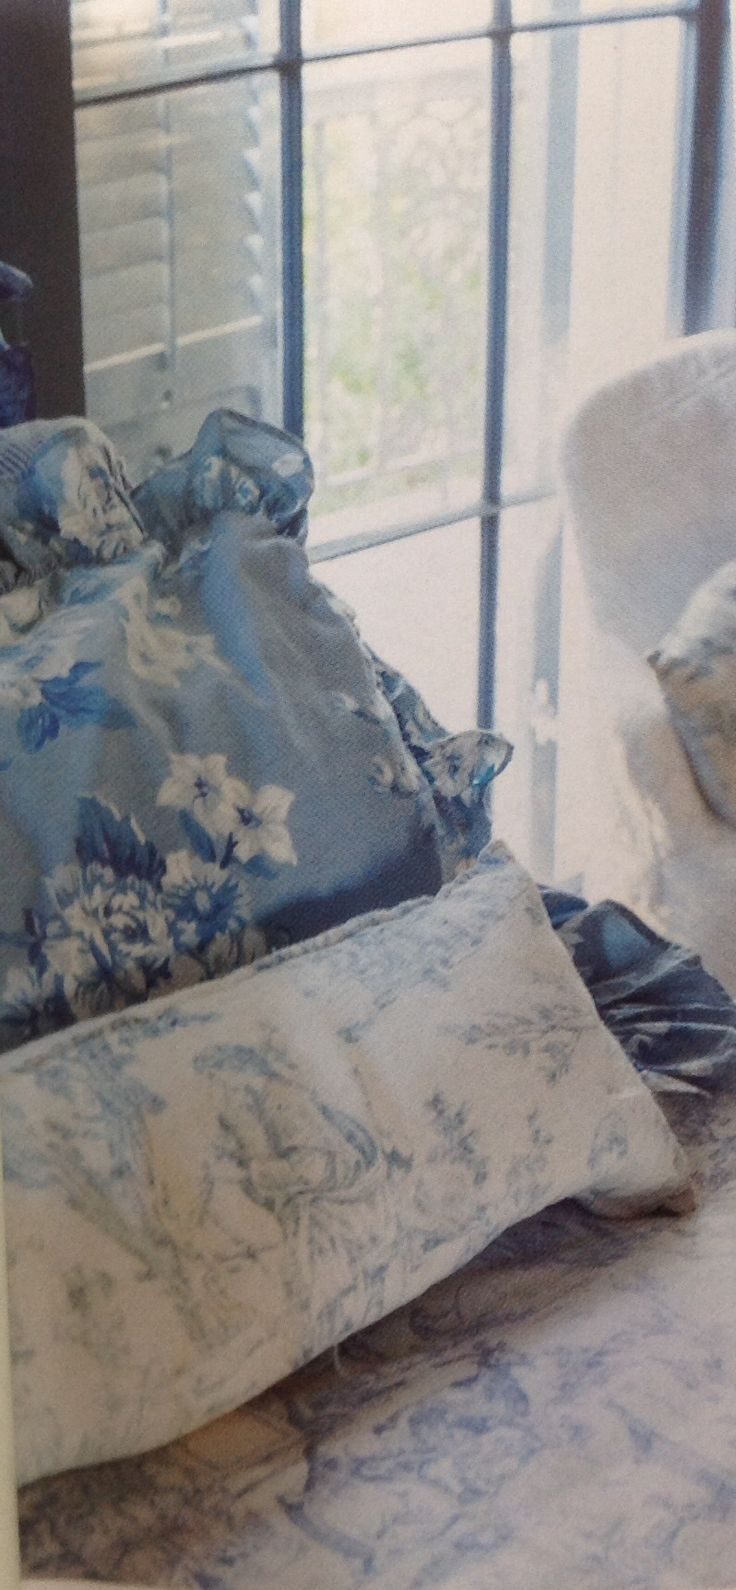 Blue and white toile bedding - Ralph Lauren Bedding Vintage Floral With Toile